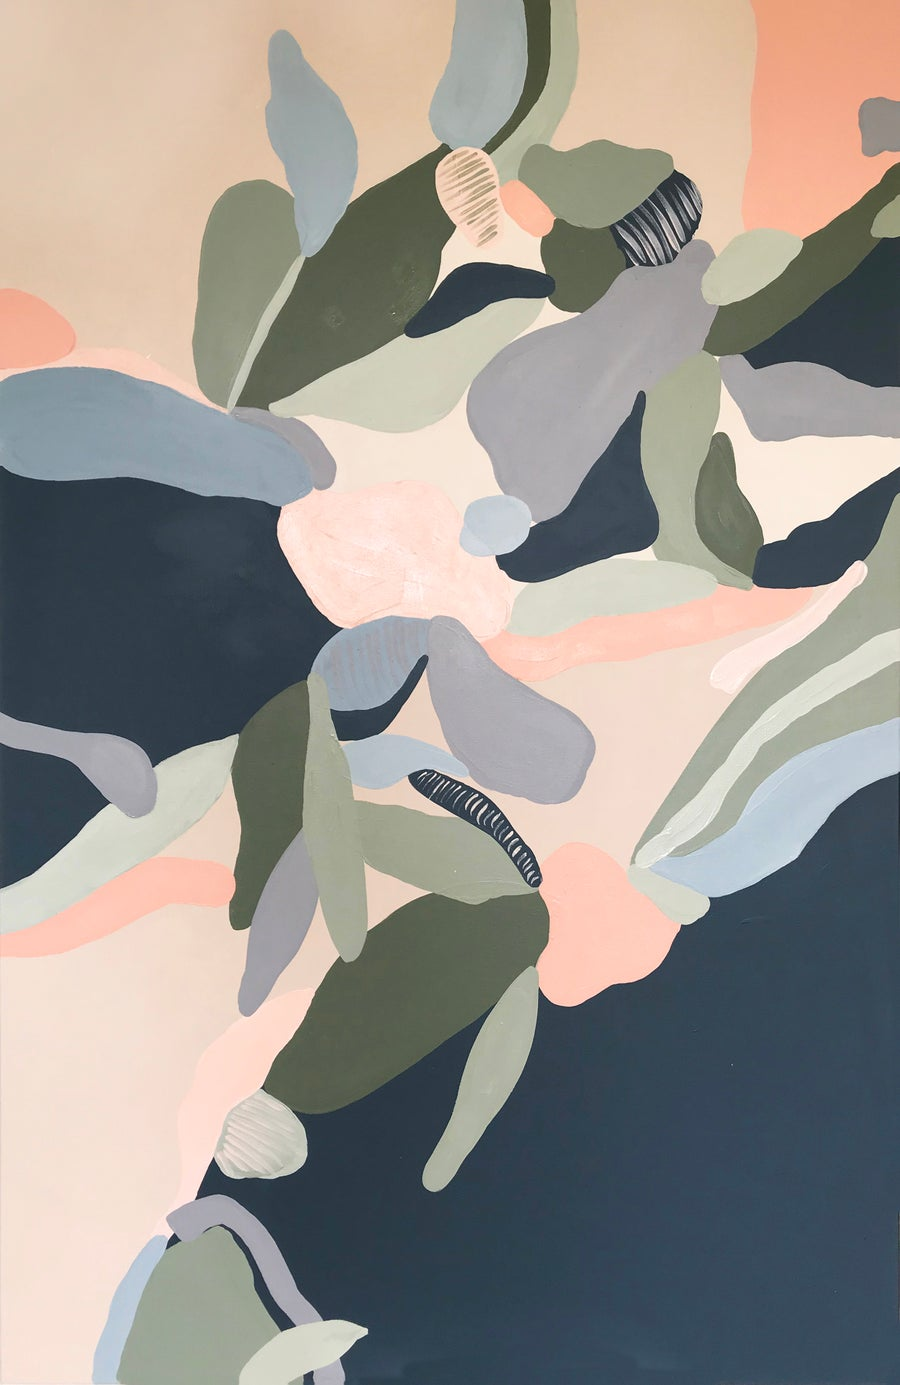 Image of ELYSIAN SERIES - 'Turning over a new leaf' by Caroline Bournon